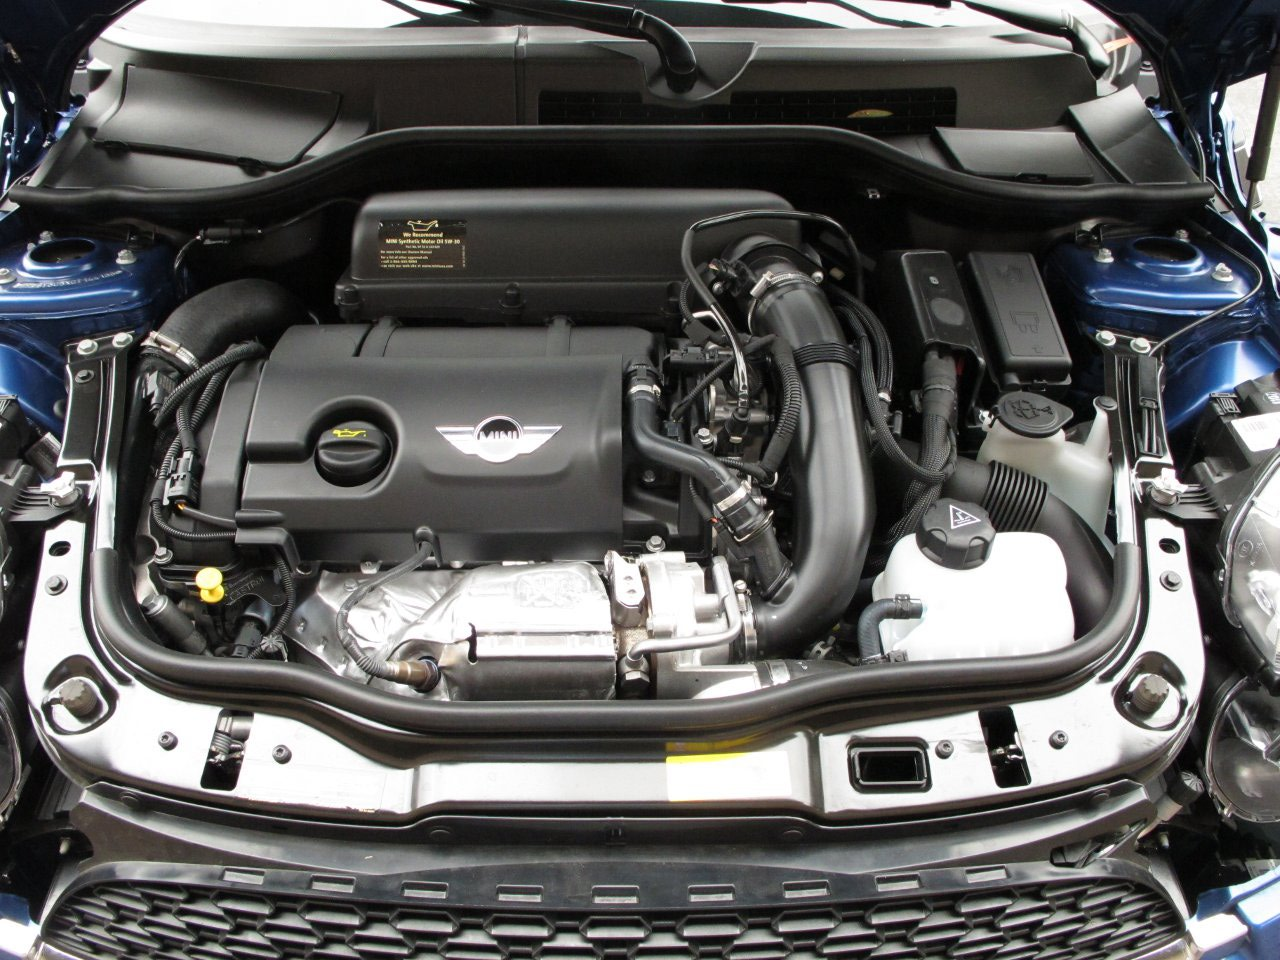 MINI Cooper Roadster engine #4